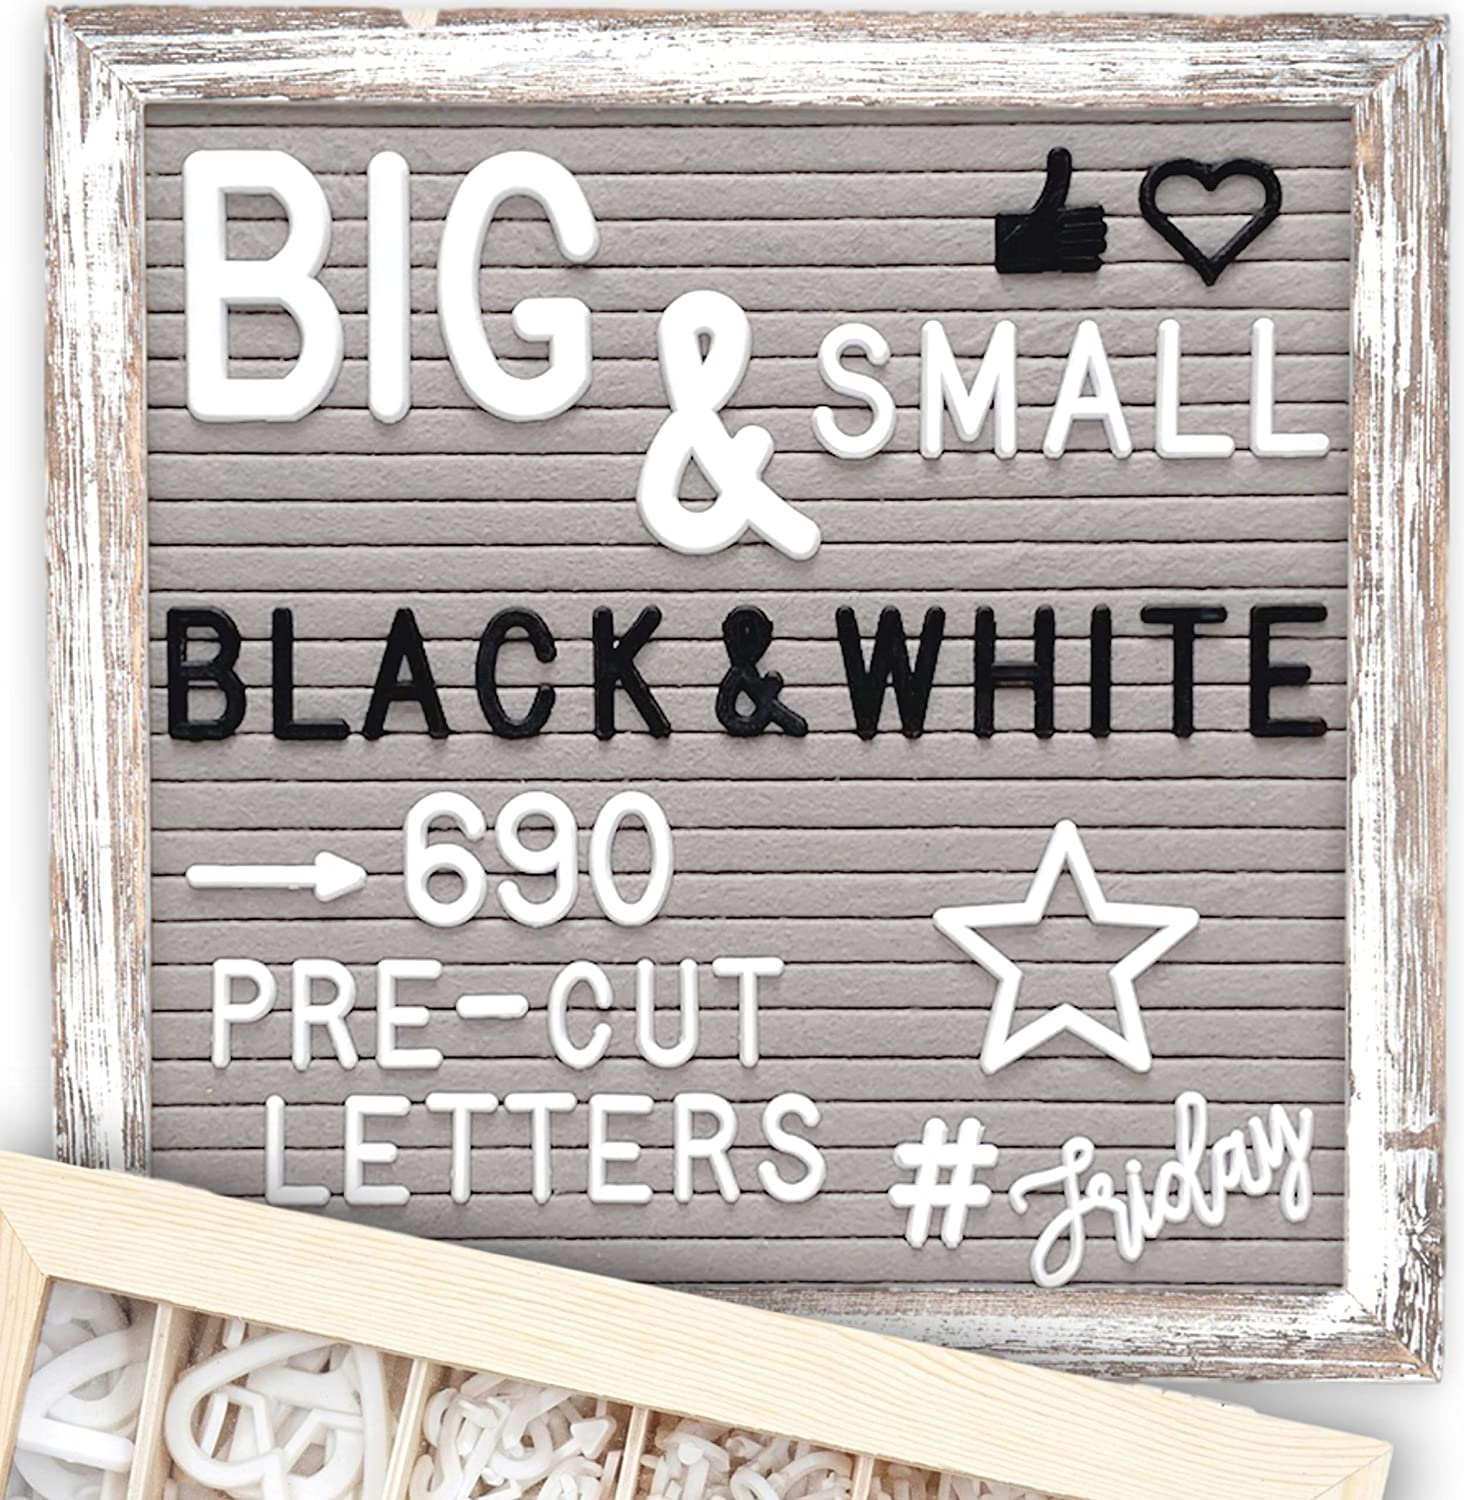 Letter Board 10x10 Rustic Gray | +690 PRE-Cut Letters +Stand +Upgraded WoodenSorting Tray | Farmhouse Felt Letterboard with Cursive Words, Letter Boards, Word Board, Message Board, Changeable Sign